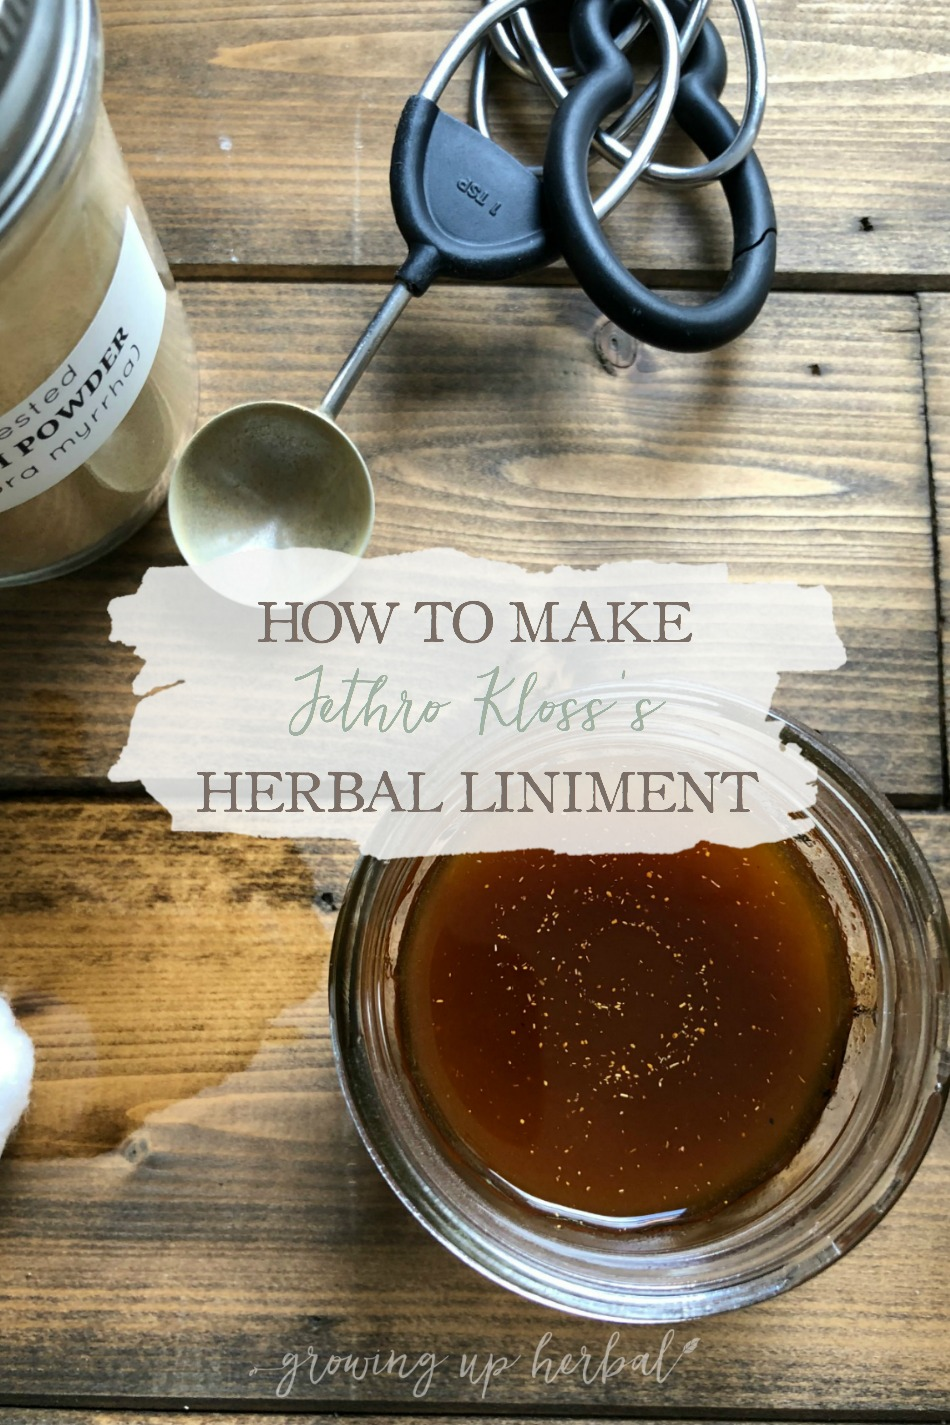 How To Make Jethro Kloss's Herbal Liniment